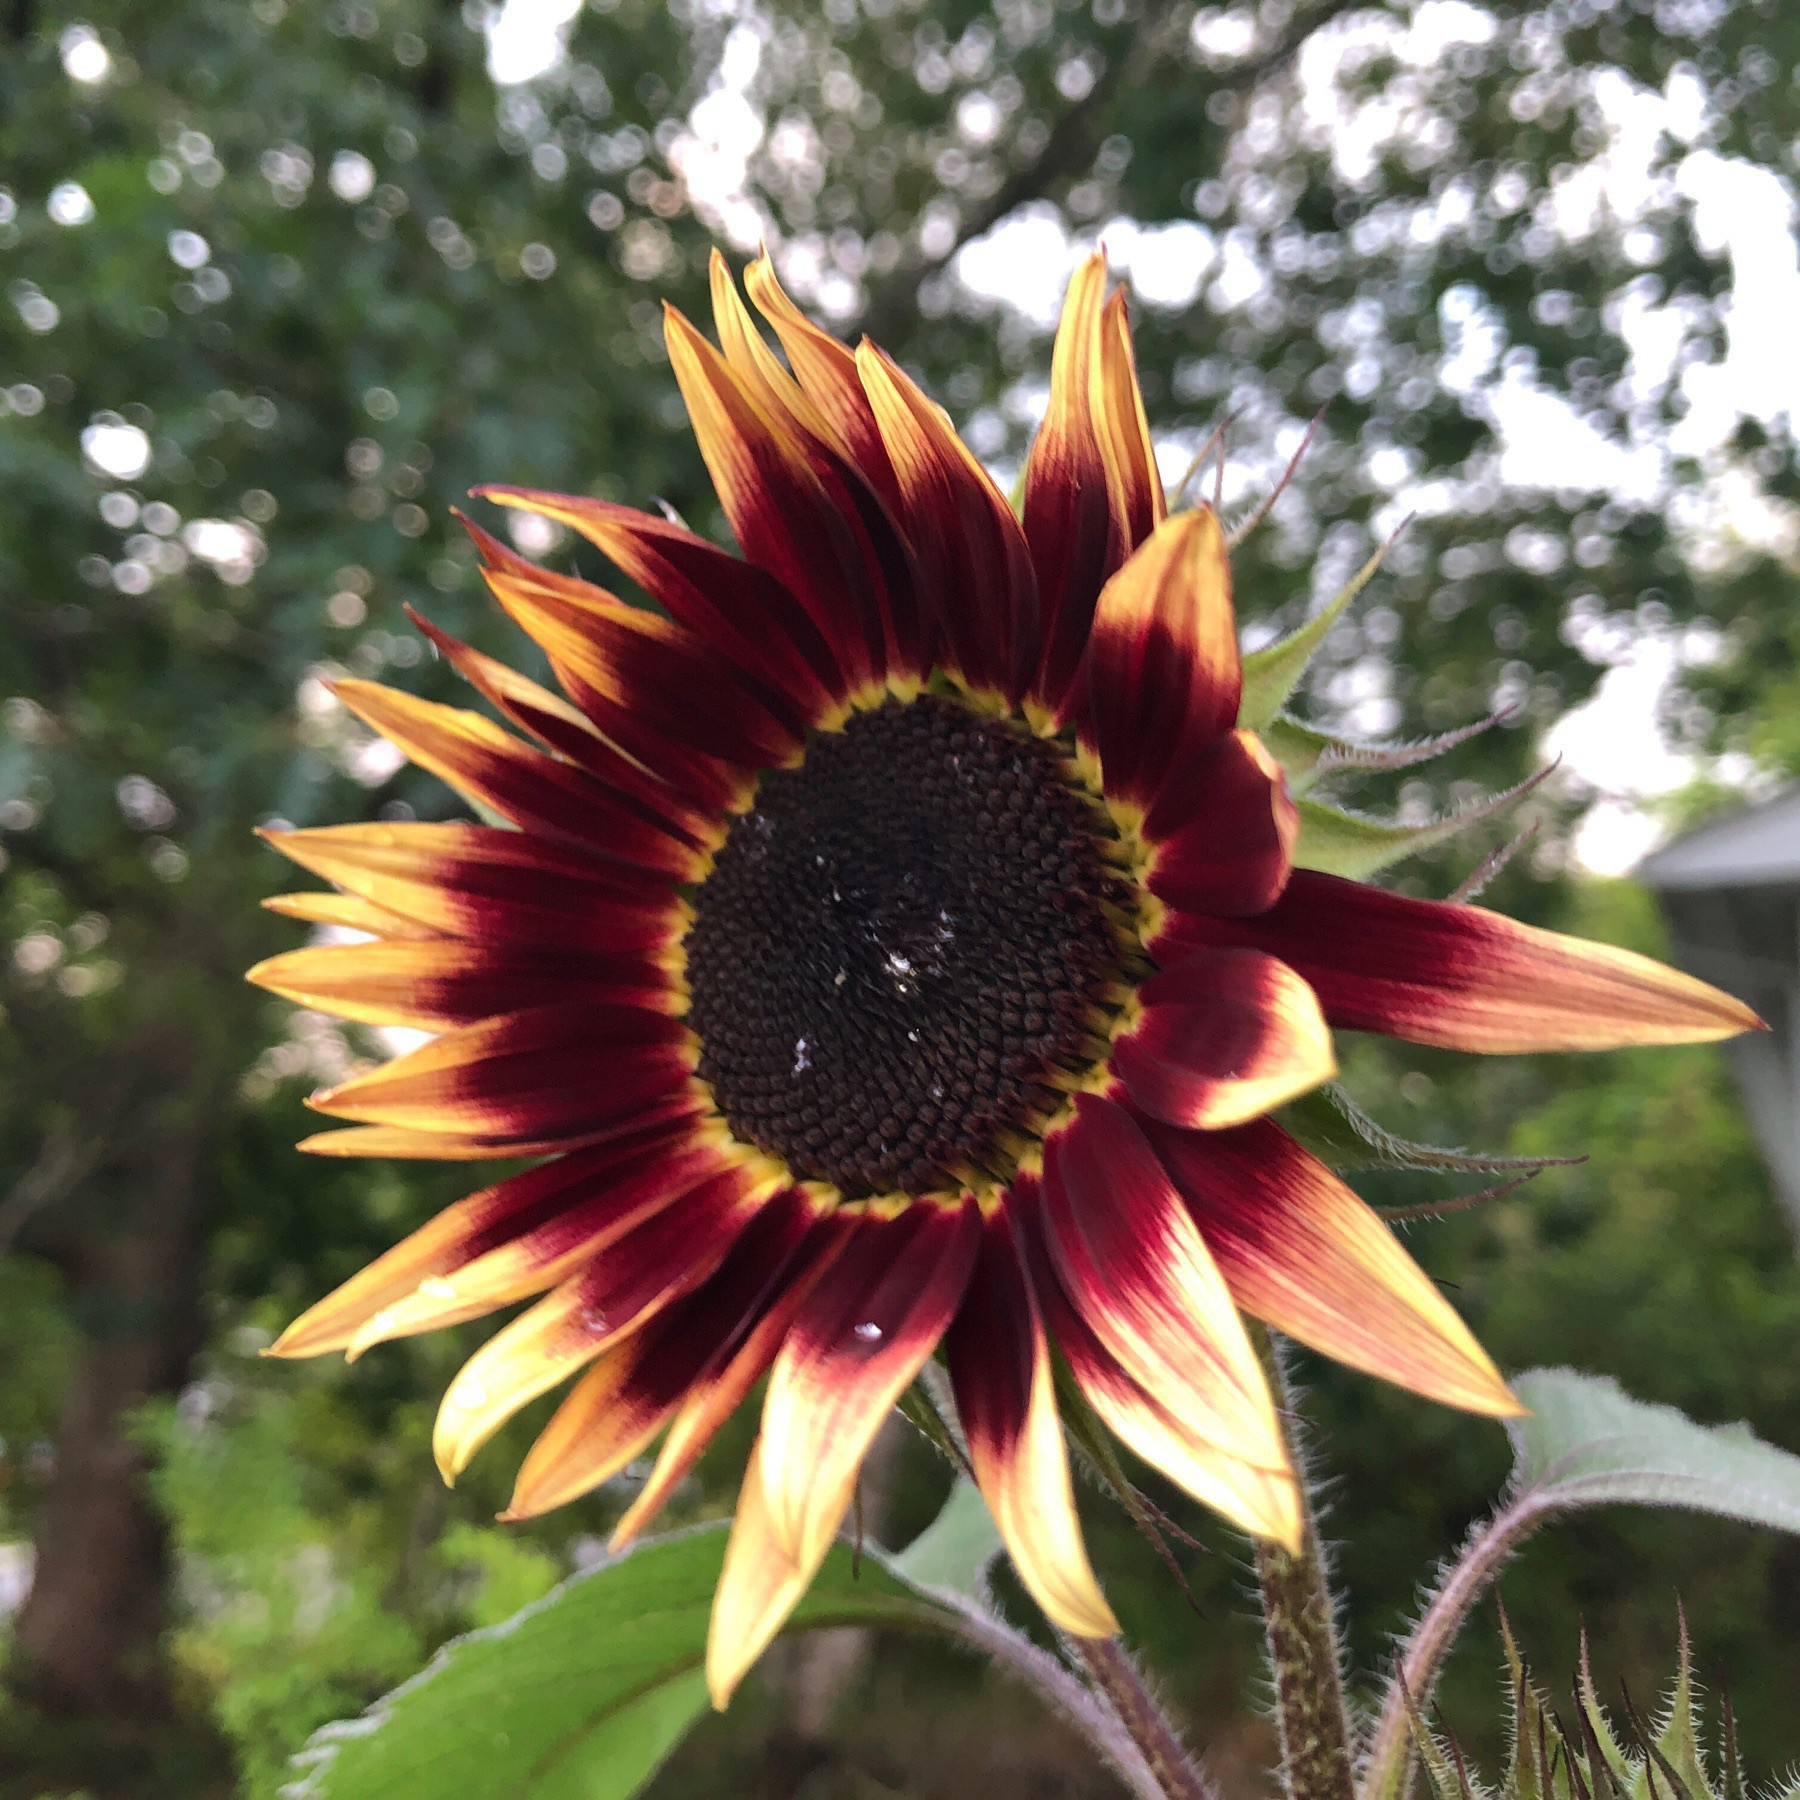 Sunflower opening.